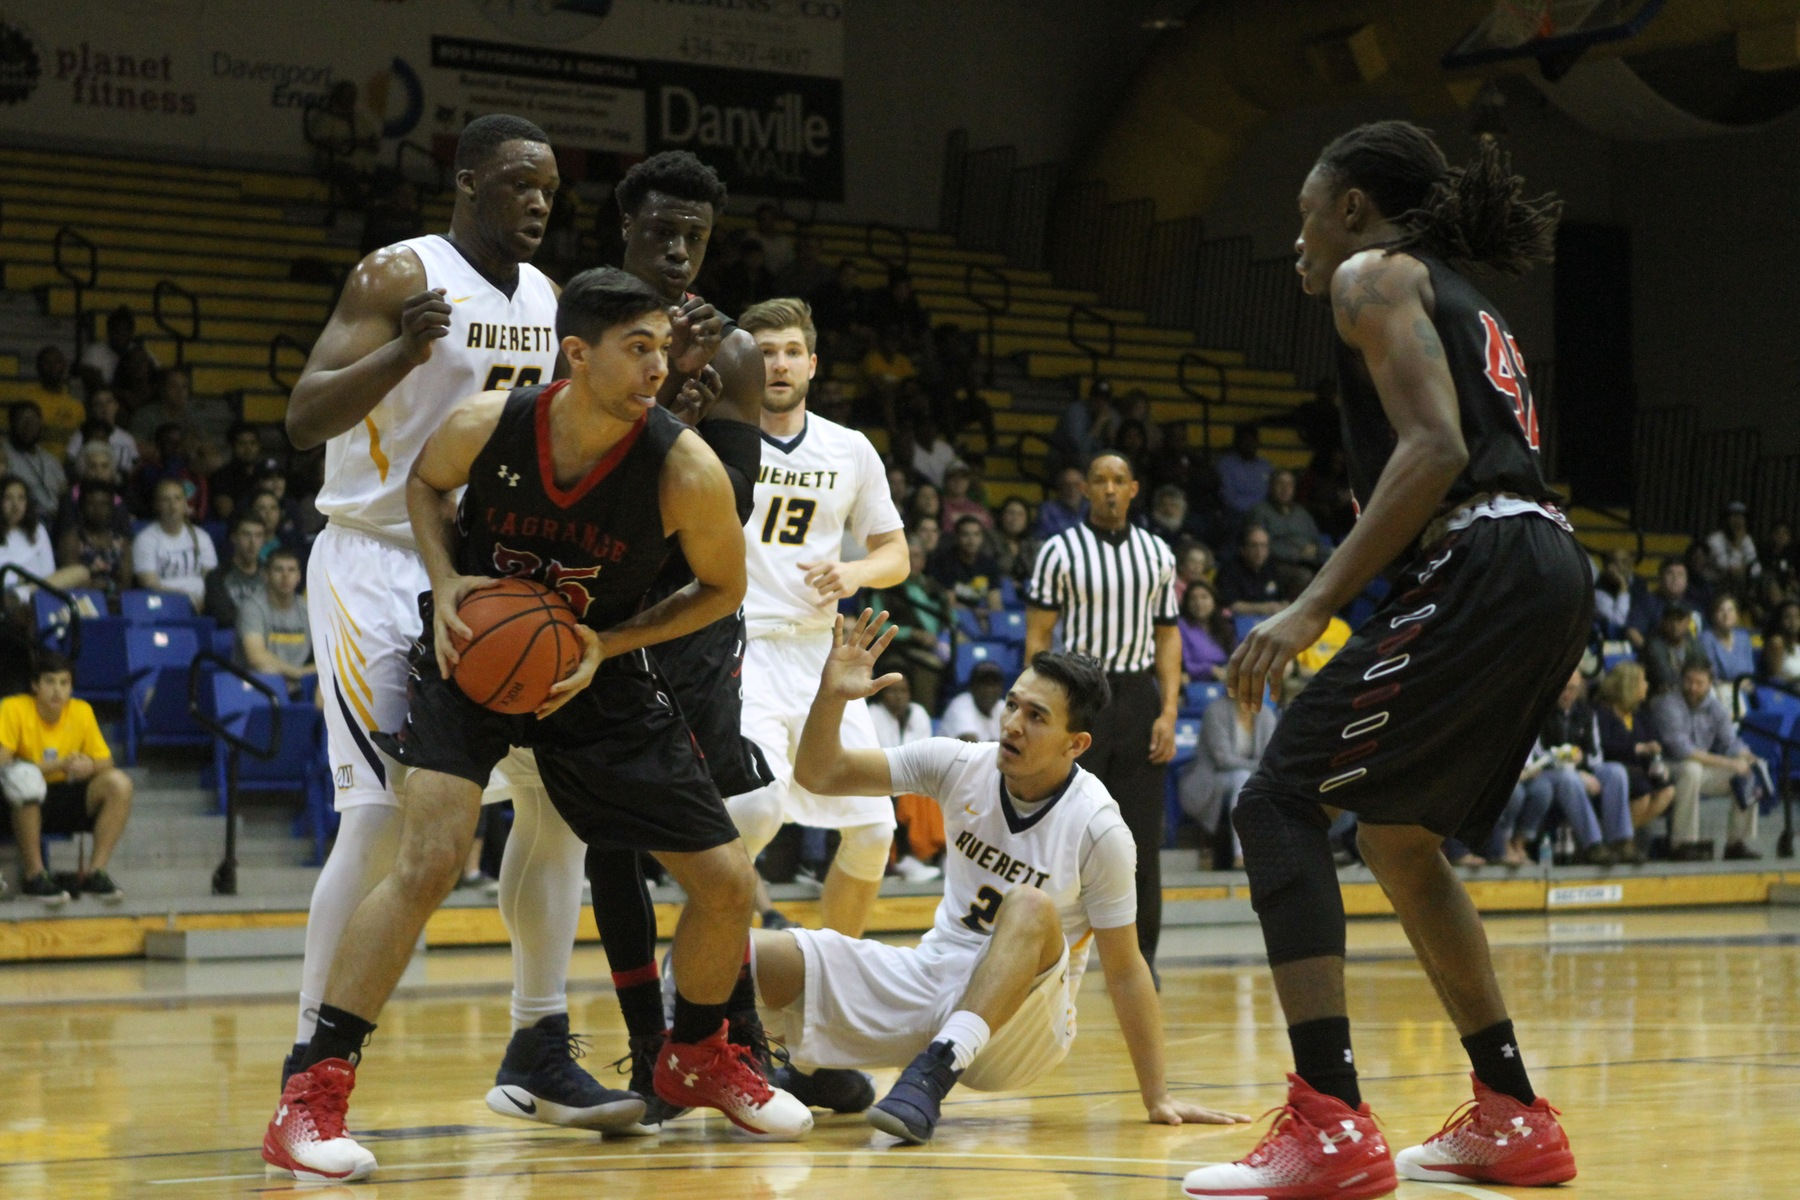 Men's Basketball: Panthers upend top-seeded Averett to reach USA South Tournament title game